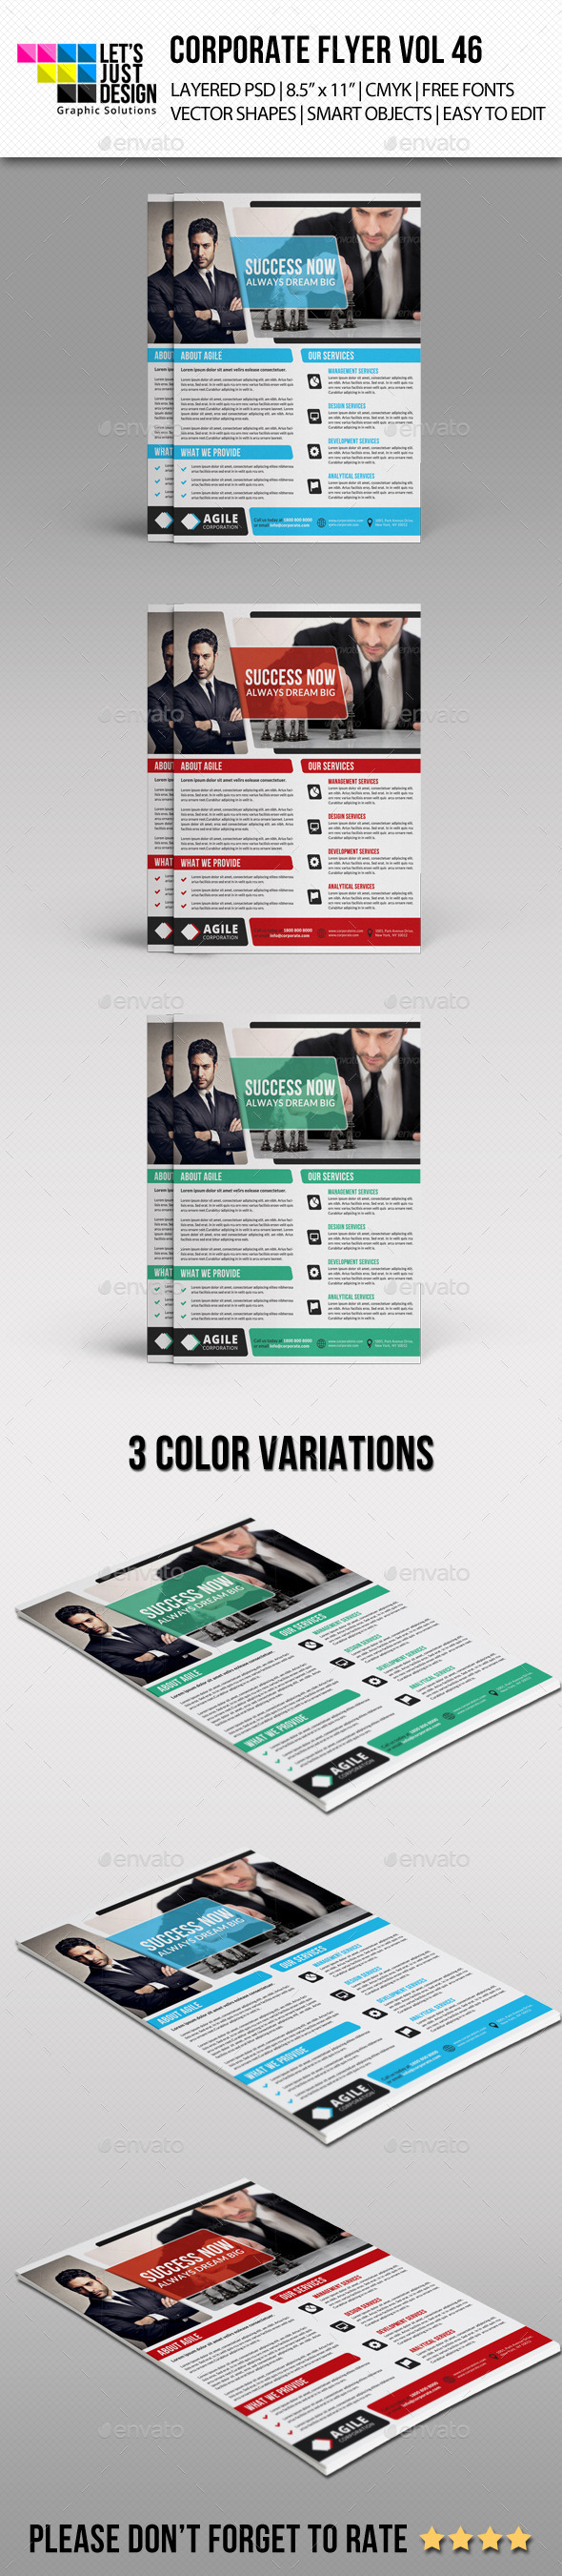 Corporate Flyer Template Vol 46 - Corporate Flyers